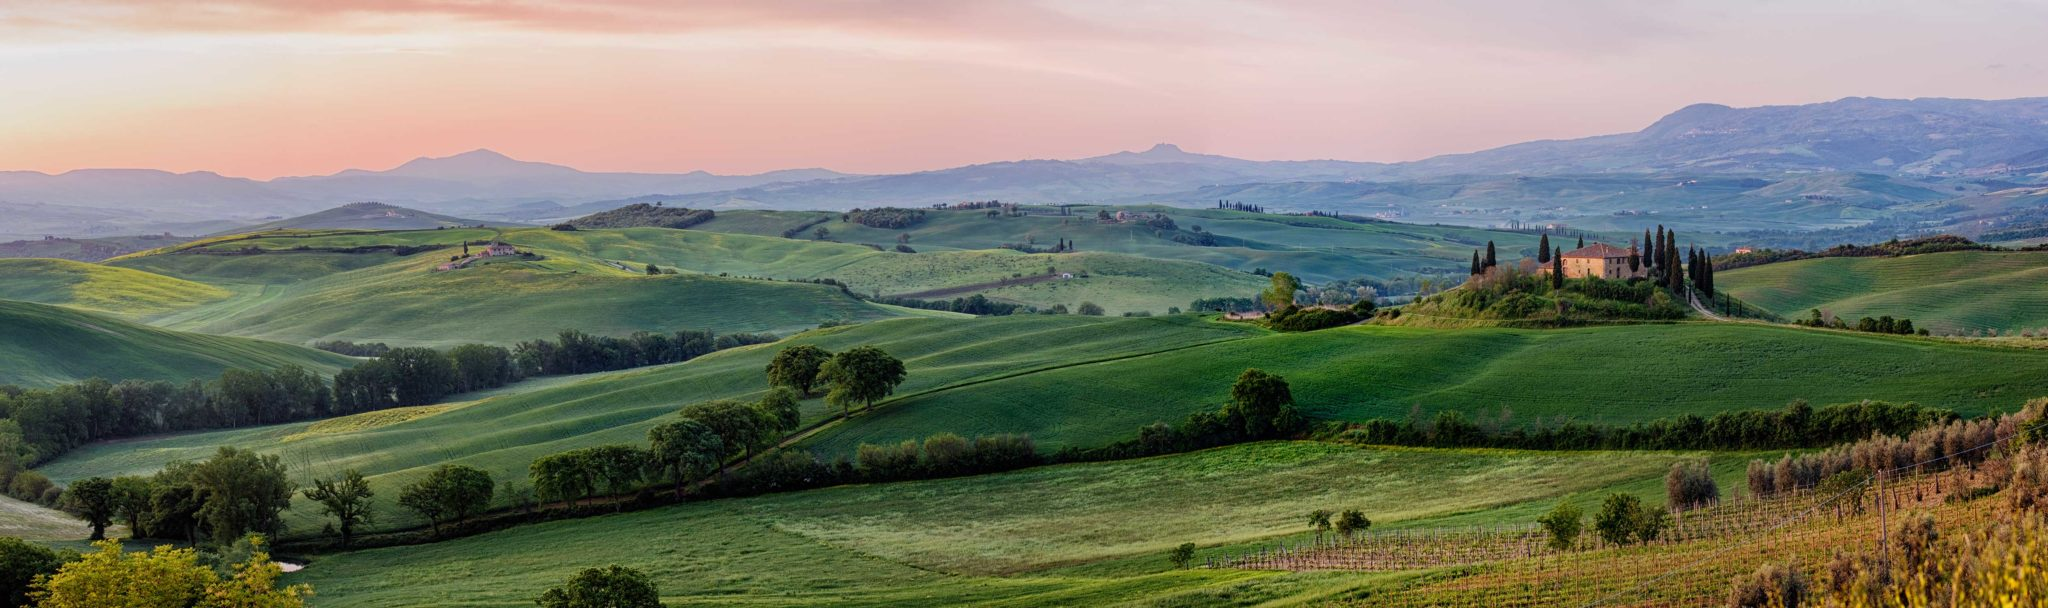 Toskana, Val d'Orcia, Herbst, Workshop, Workshops, Fotografie, Panorama, Photography, Ernst Merkhofer, Fotograf, Landschaft,